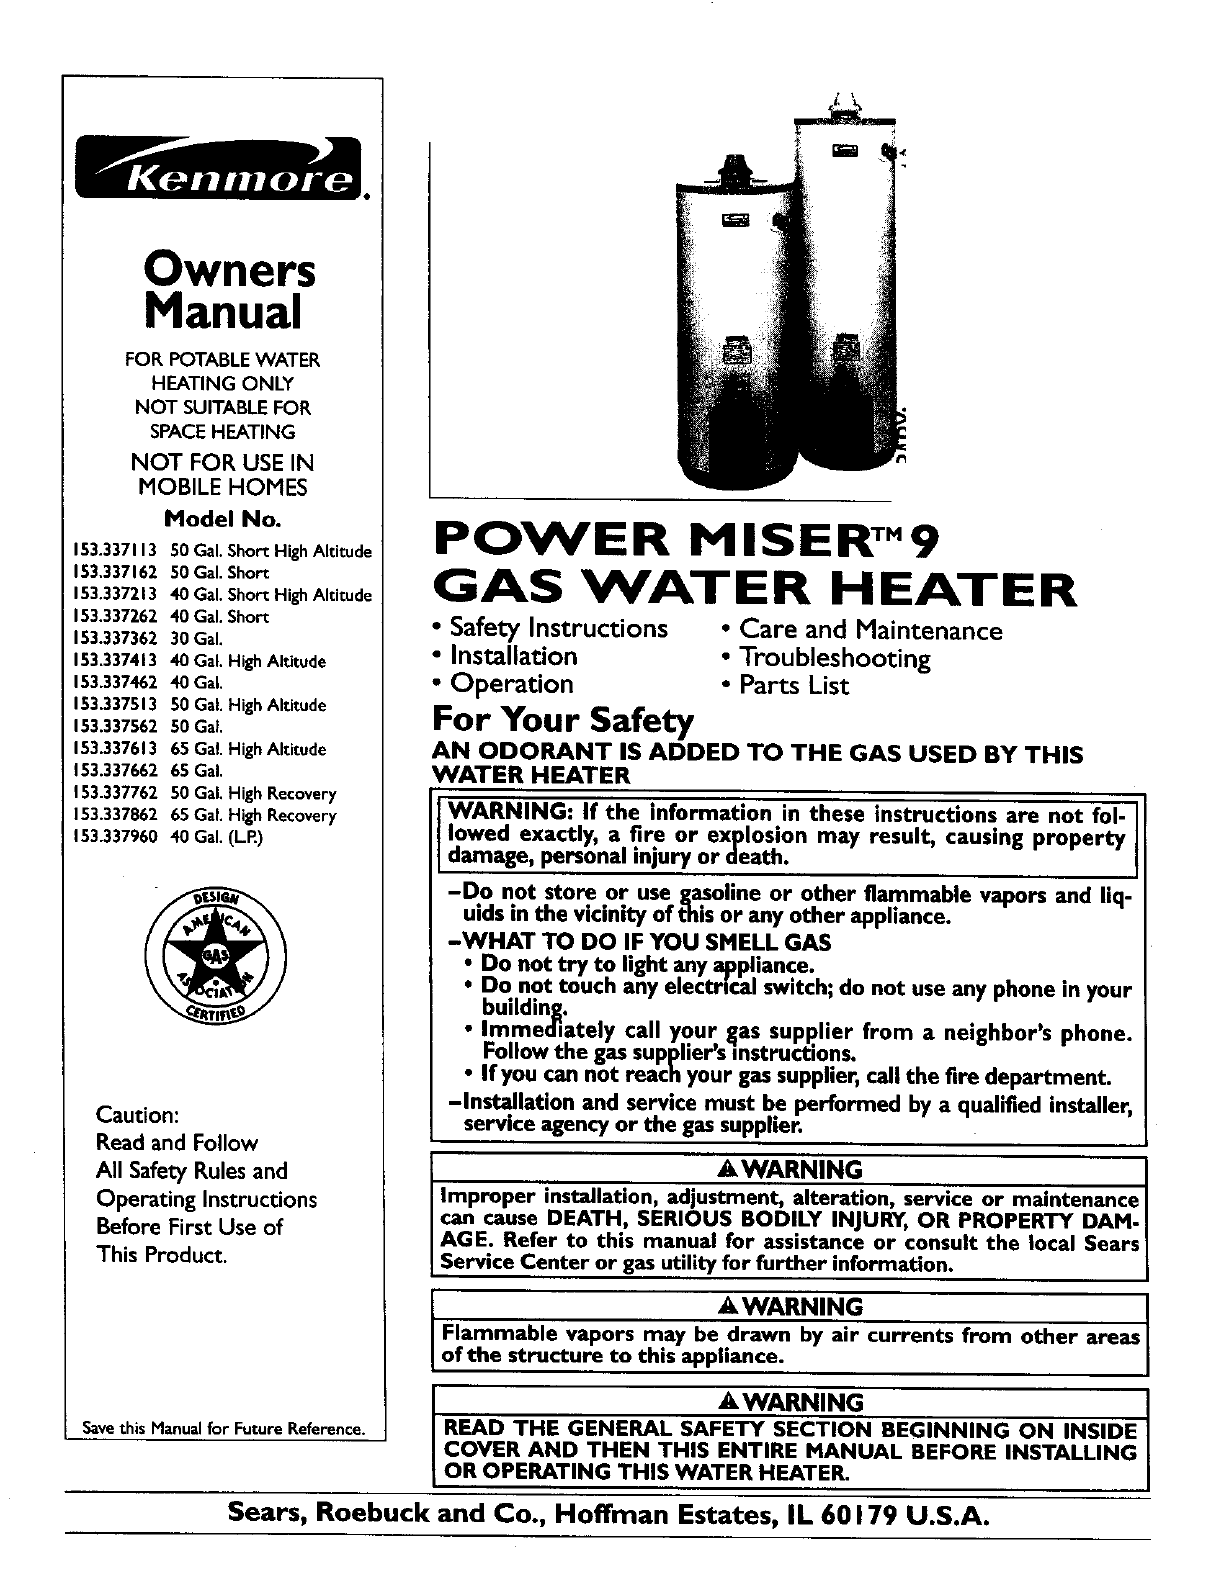 Kenmore water heater 153337462 user guide manualsonline owners manual ccuart Image collections